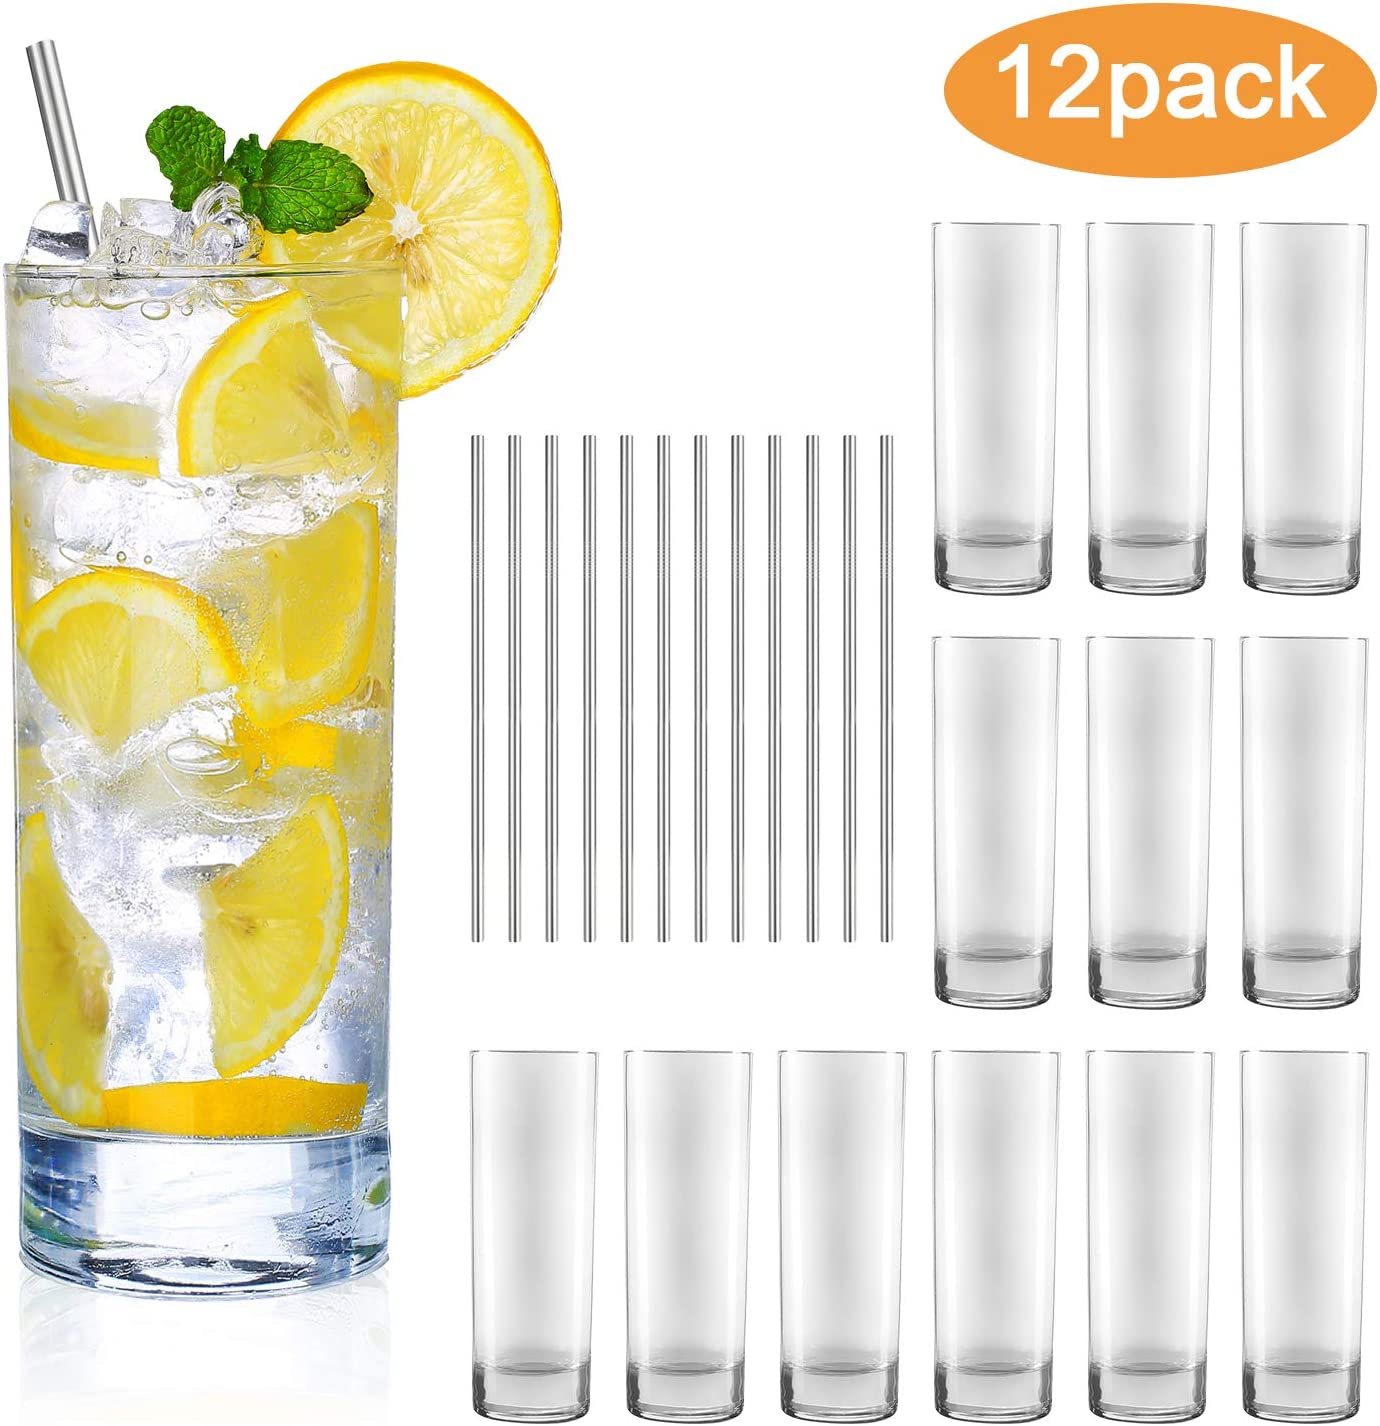 Glass Cups 10 oz,QAPPDA Clear Highballl Glass Cocktail Glass Drinking Glasses For Kitchen,Heavy Base Water Cup For Juice,Cocktails,Beverages,Drinking Cups Beer Cups Set Of 12 KTY1002